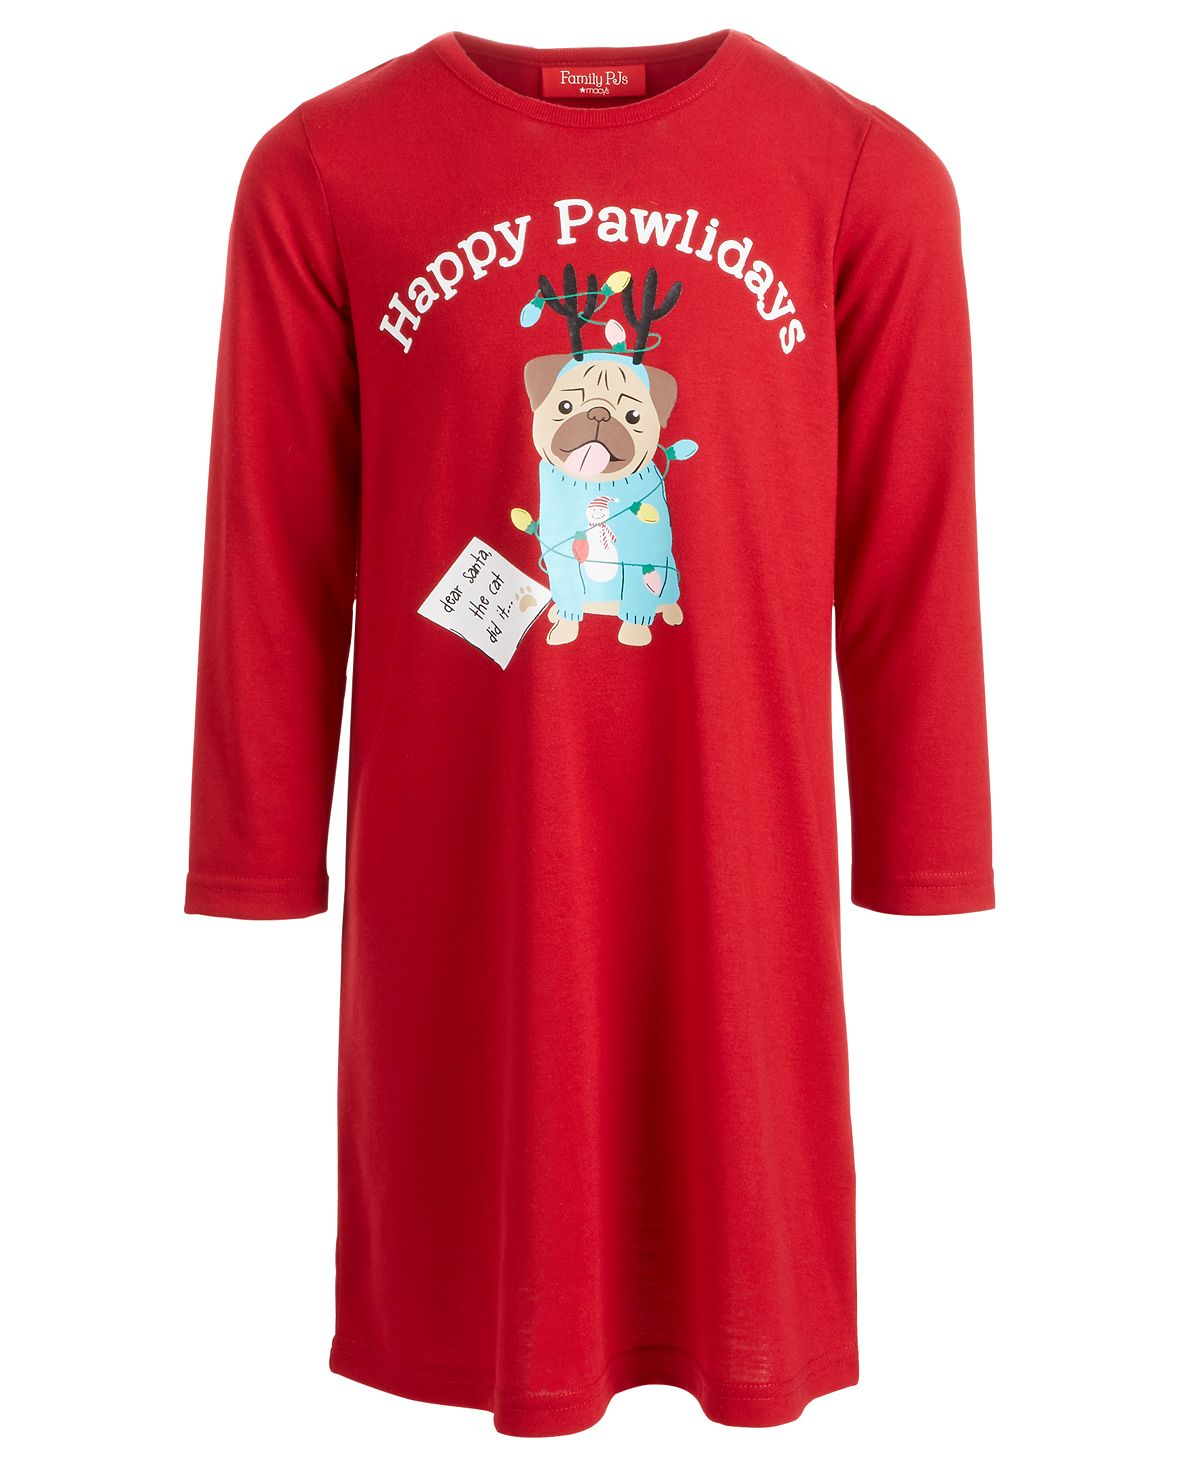 Matching Family Pajamas Kids Happy Pawlidays Sleep Shirt